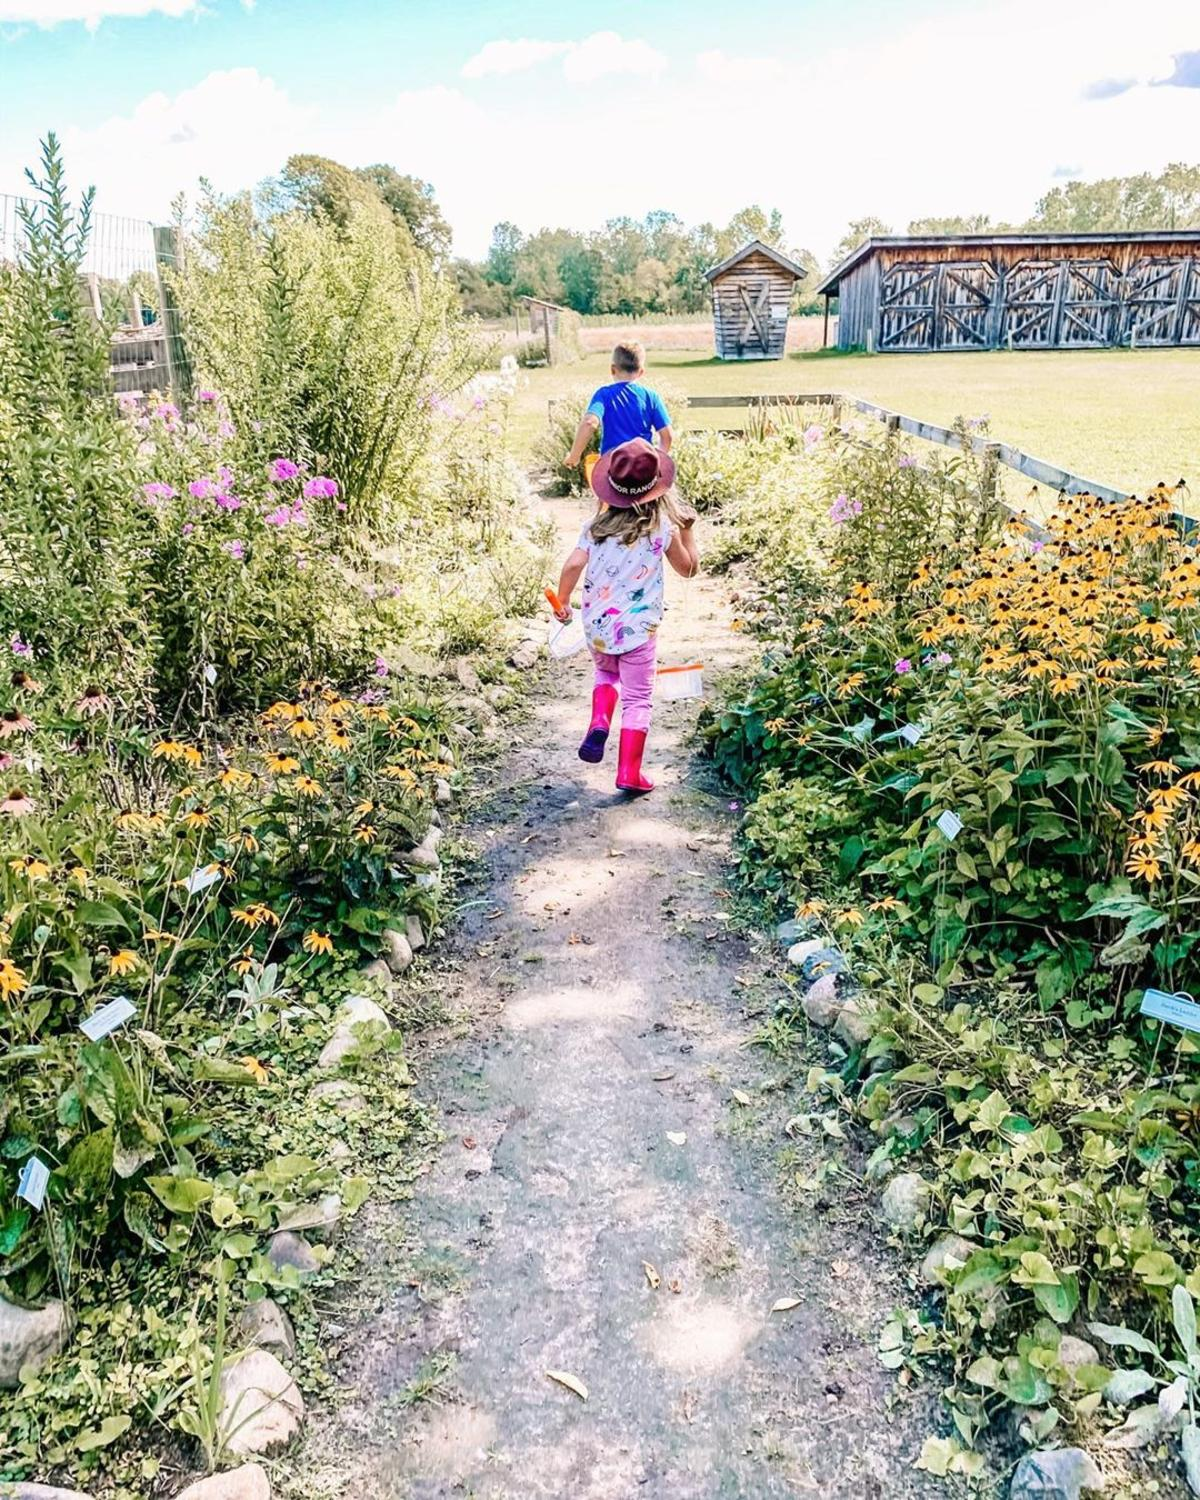 Children running down a pathway lined with flowers at Chippewa Nature Center in Midland